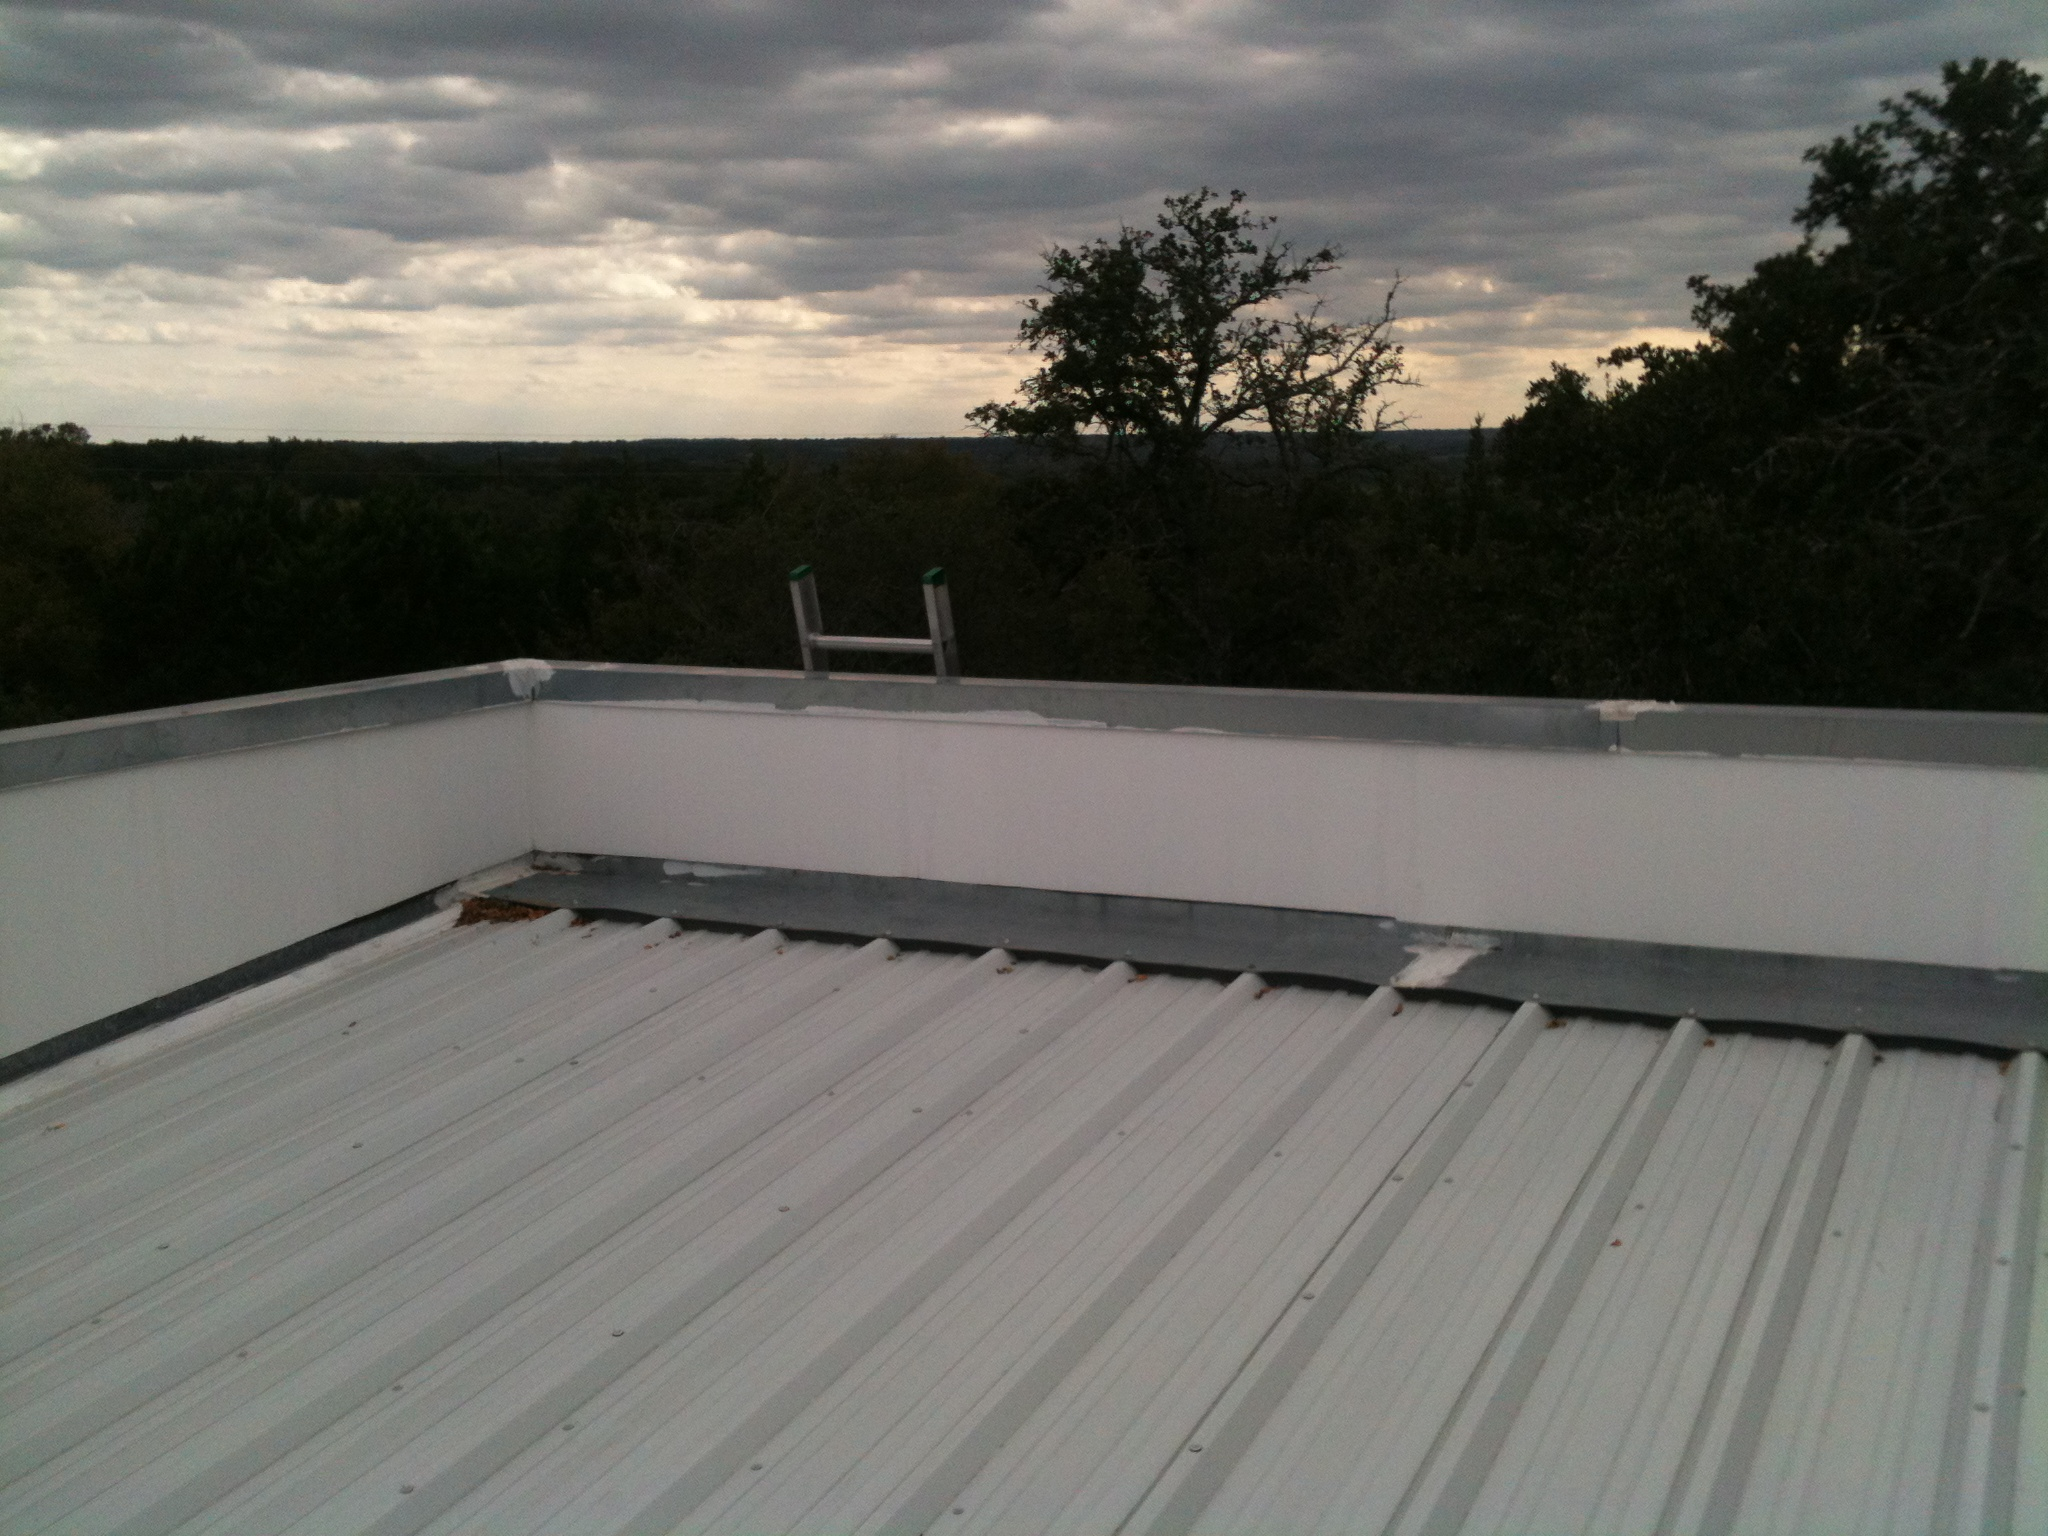 Industrial Roofing - TX Built Roofing